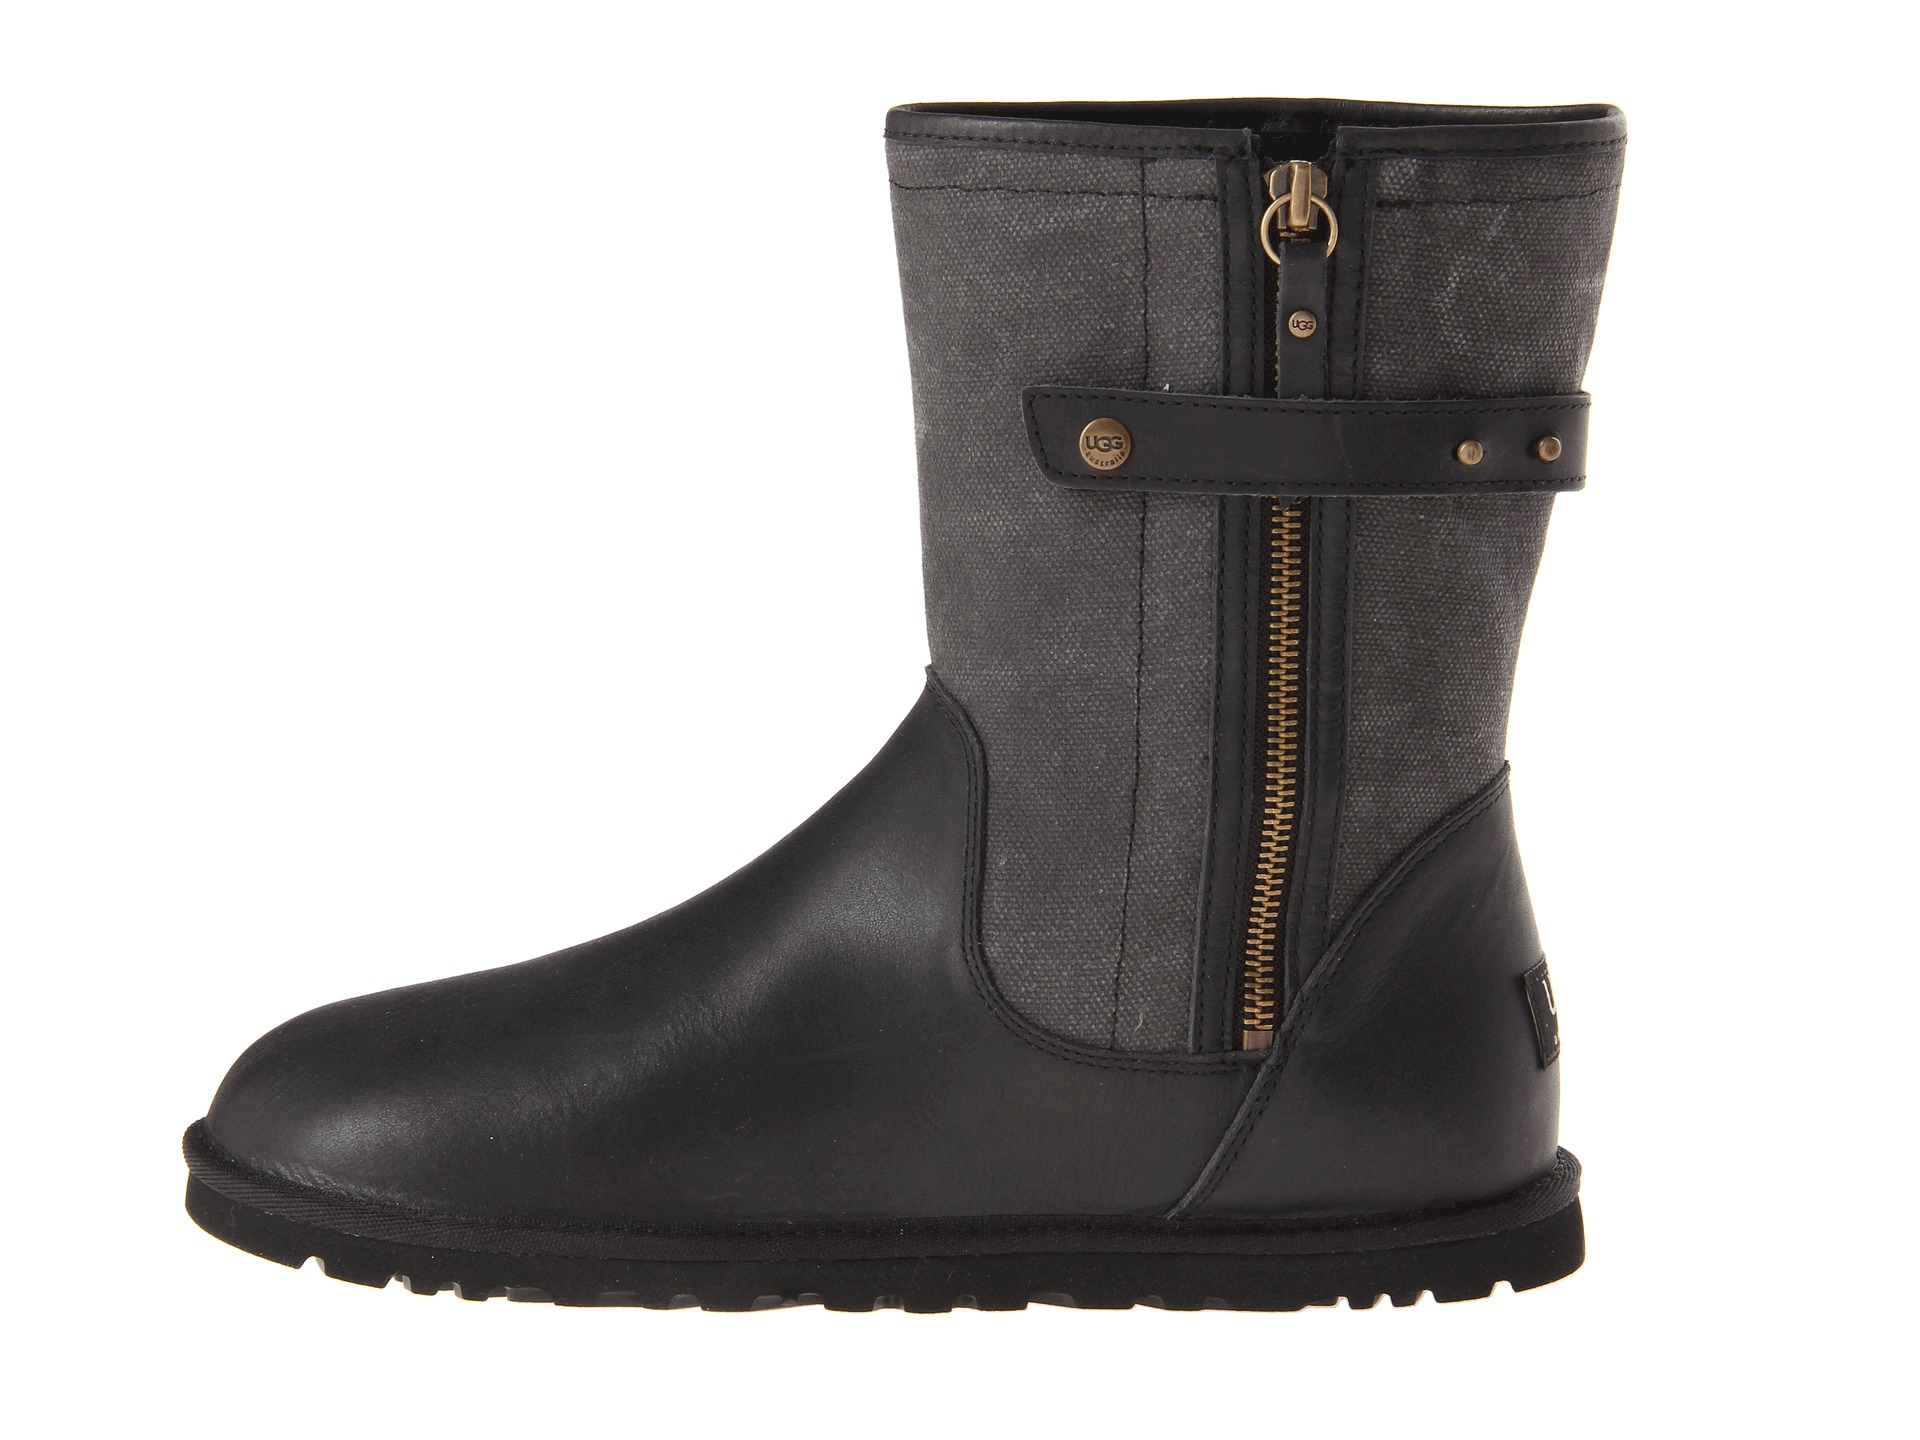 1ace9811985 Ugg Boots On Sale Hills - cheap watches mgc-gas.com